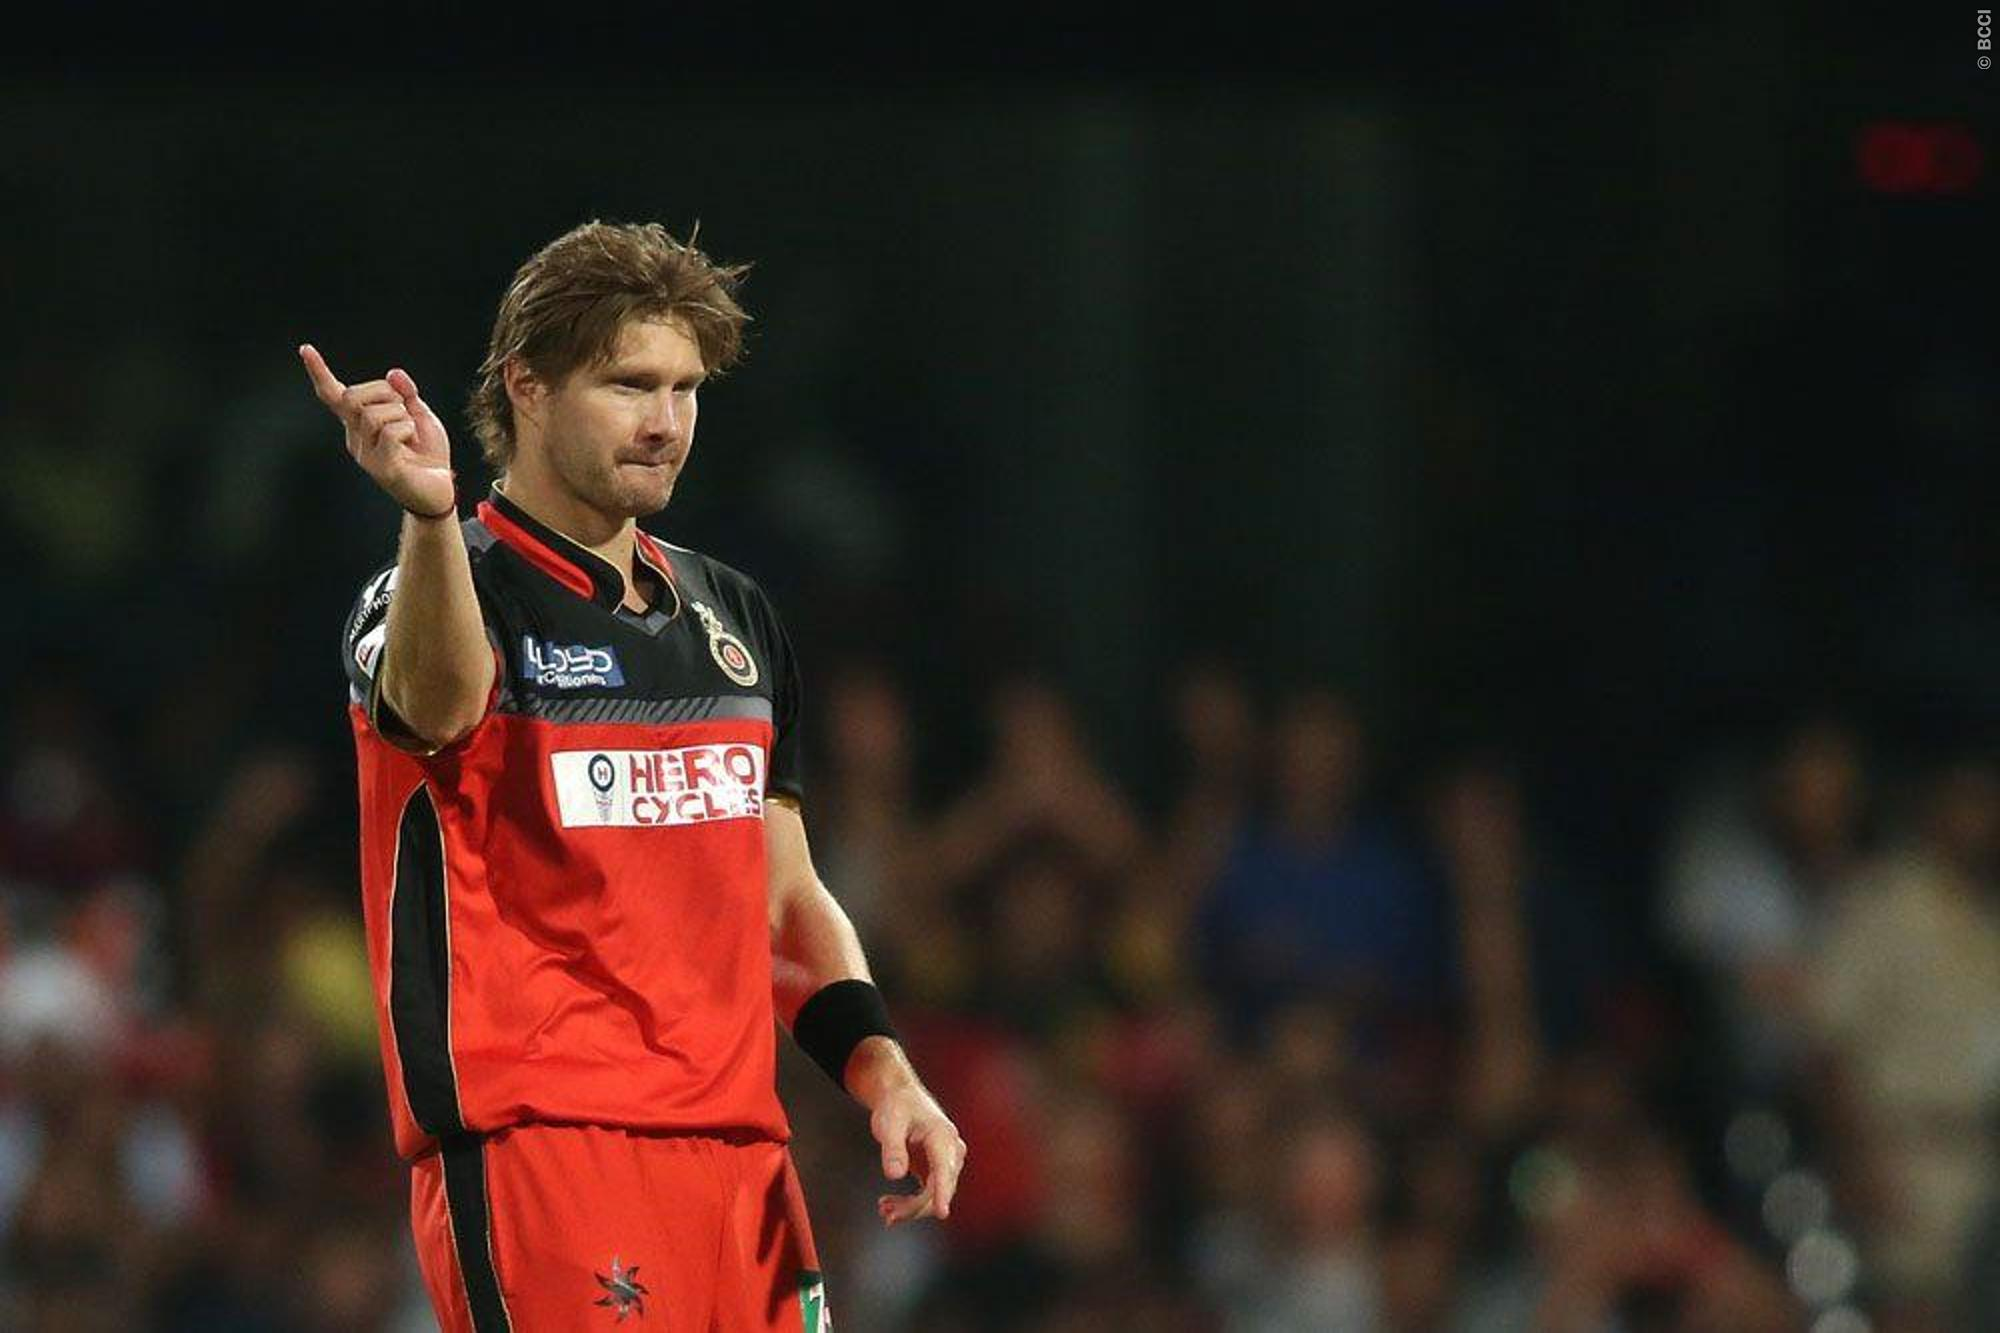 Shane Watson to Captain Royal Challengers Bangalore in Virat Kohli's Absence